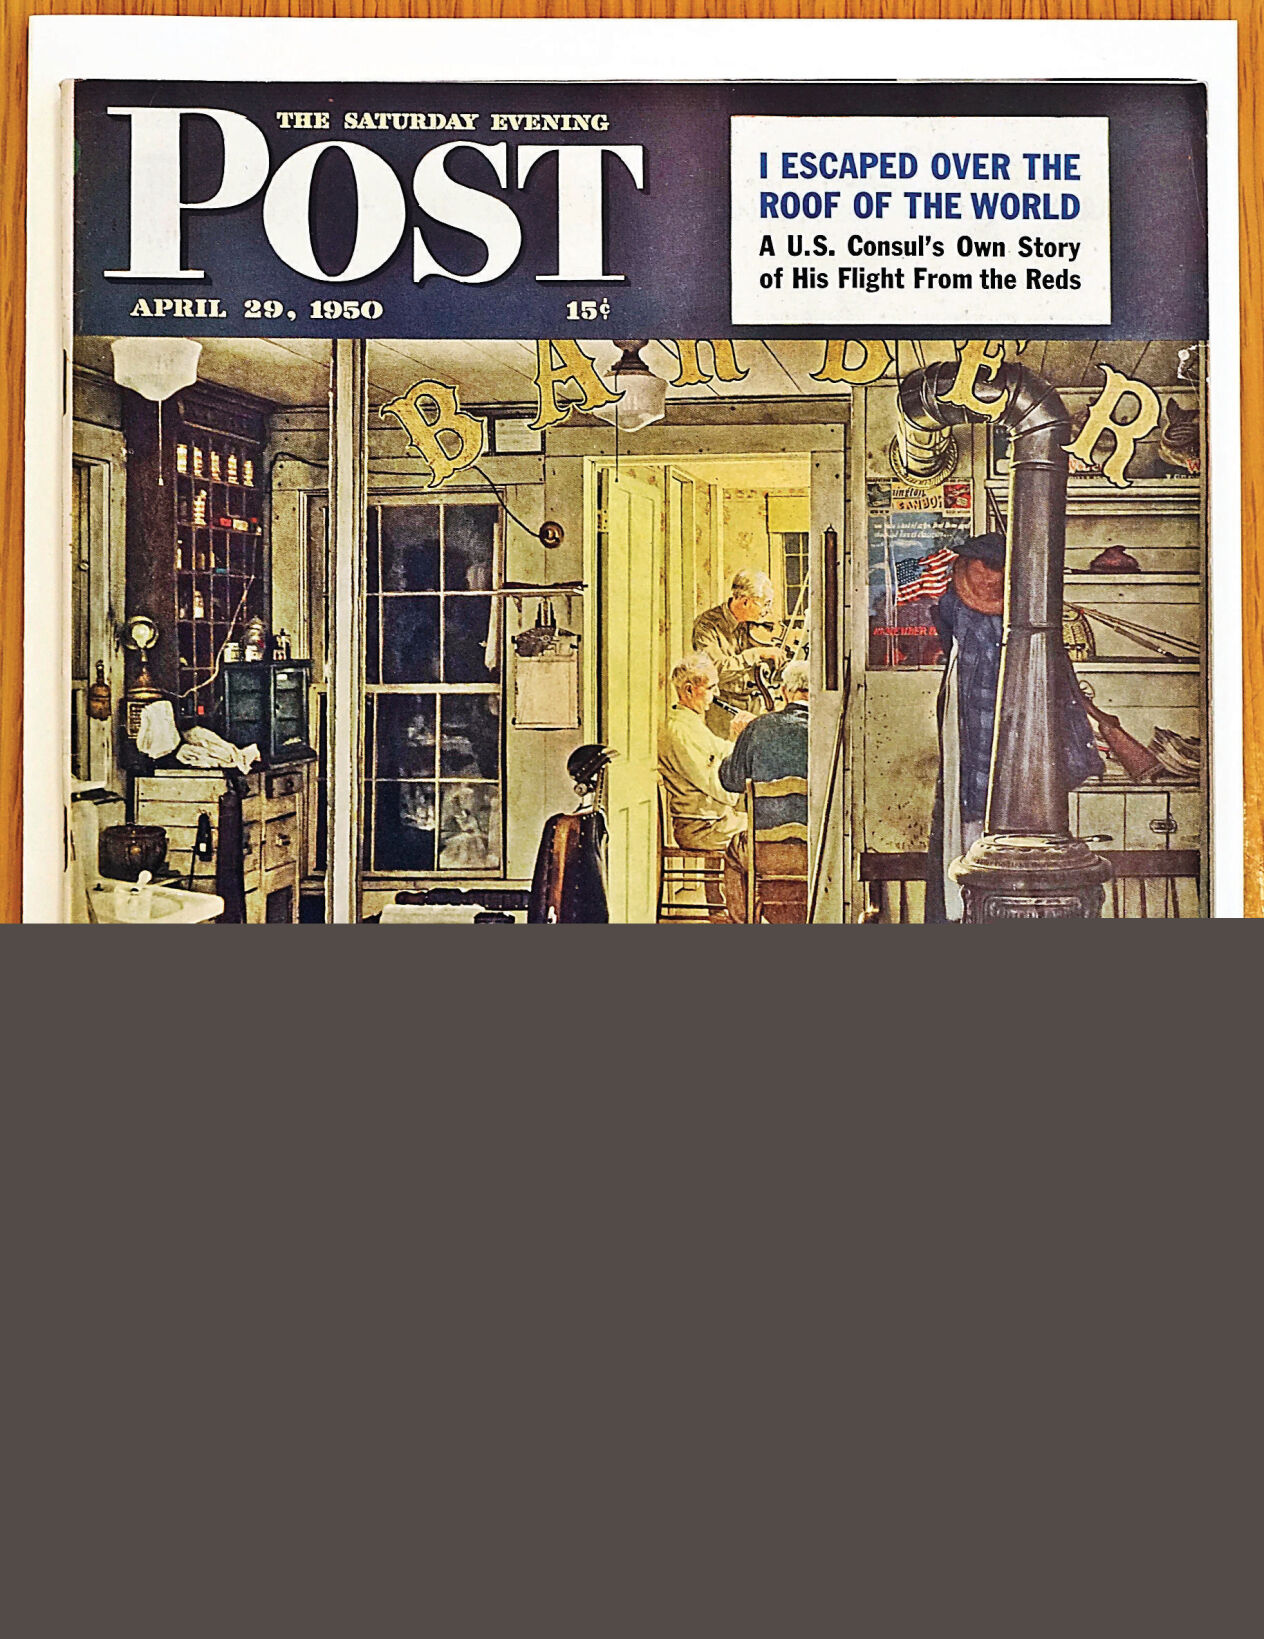 Rockwell sons oppose art sale: Want paintings to remain in public hands